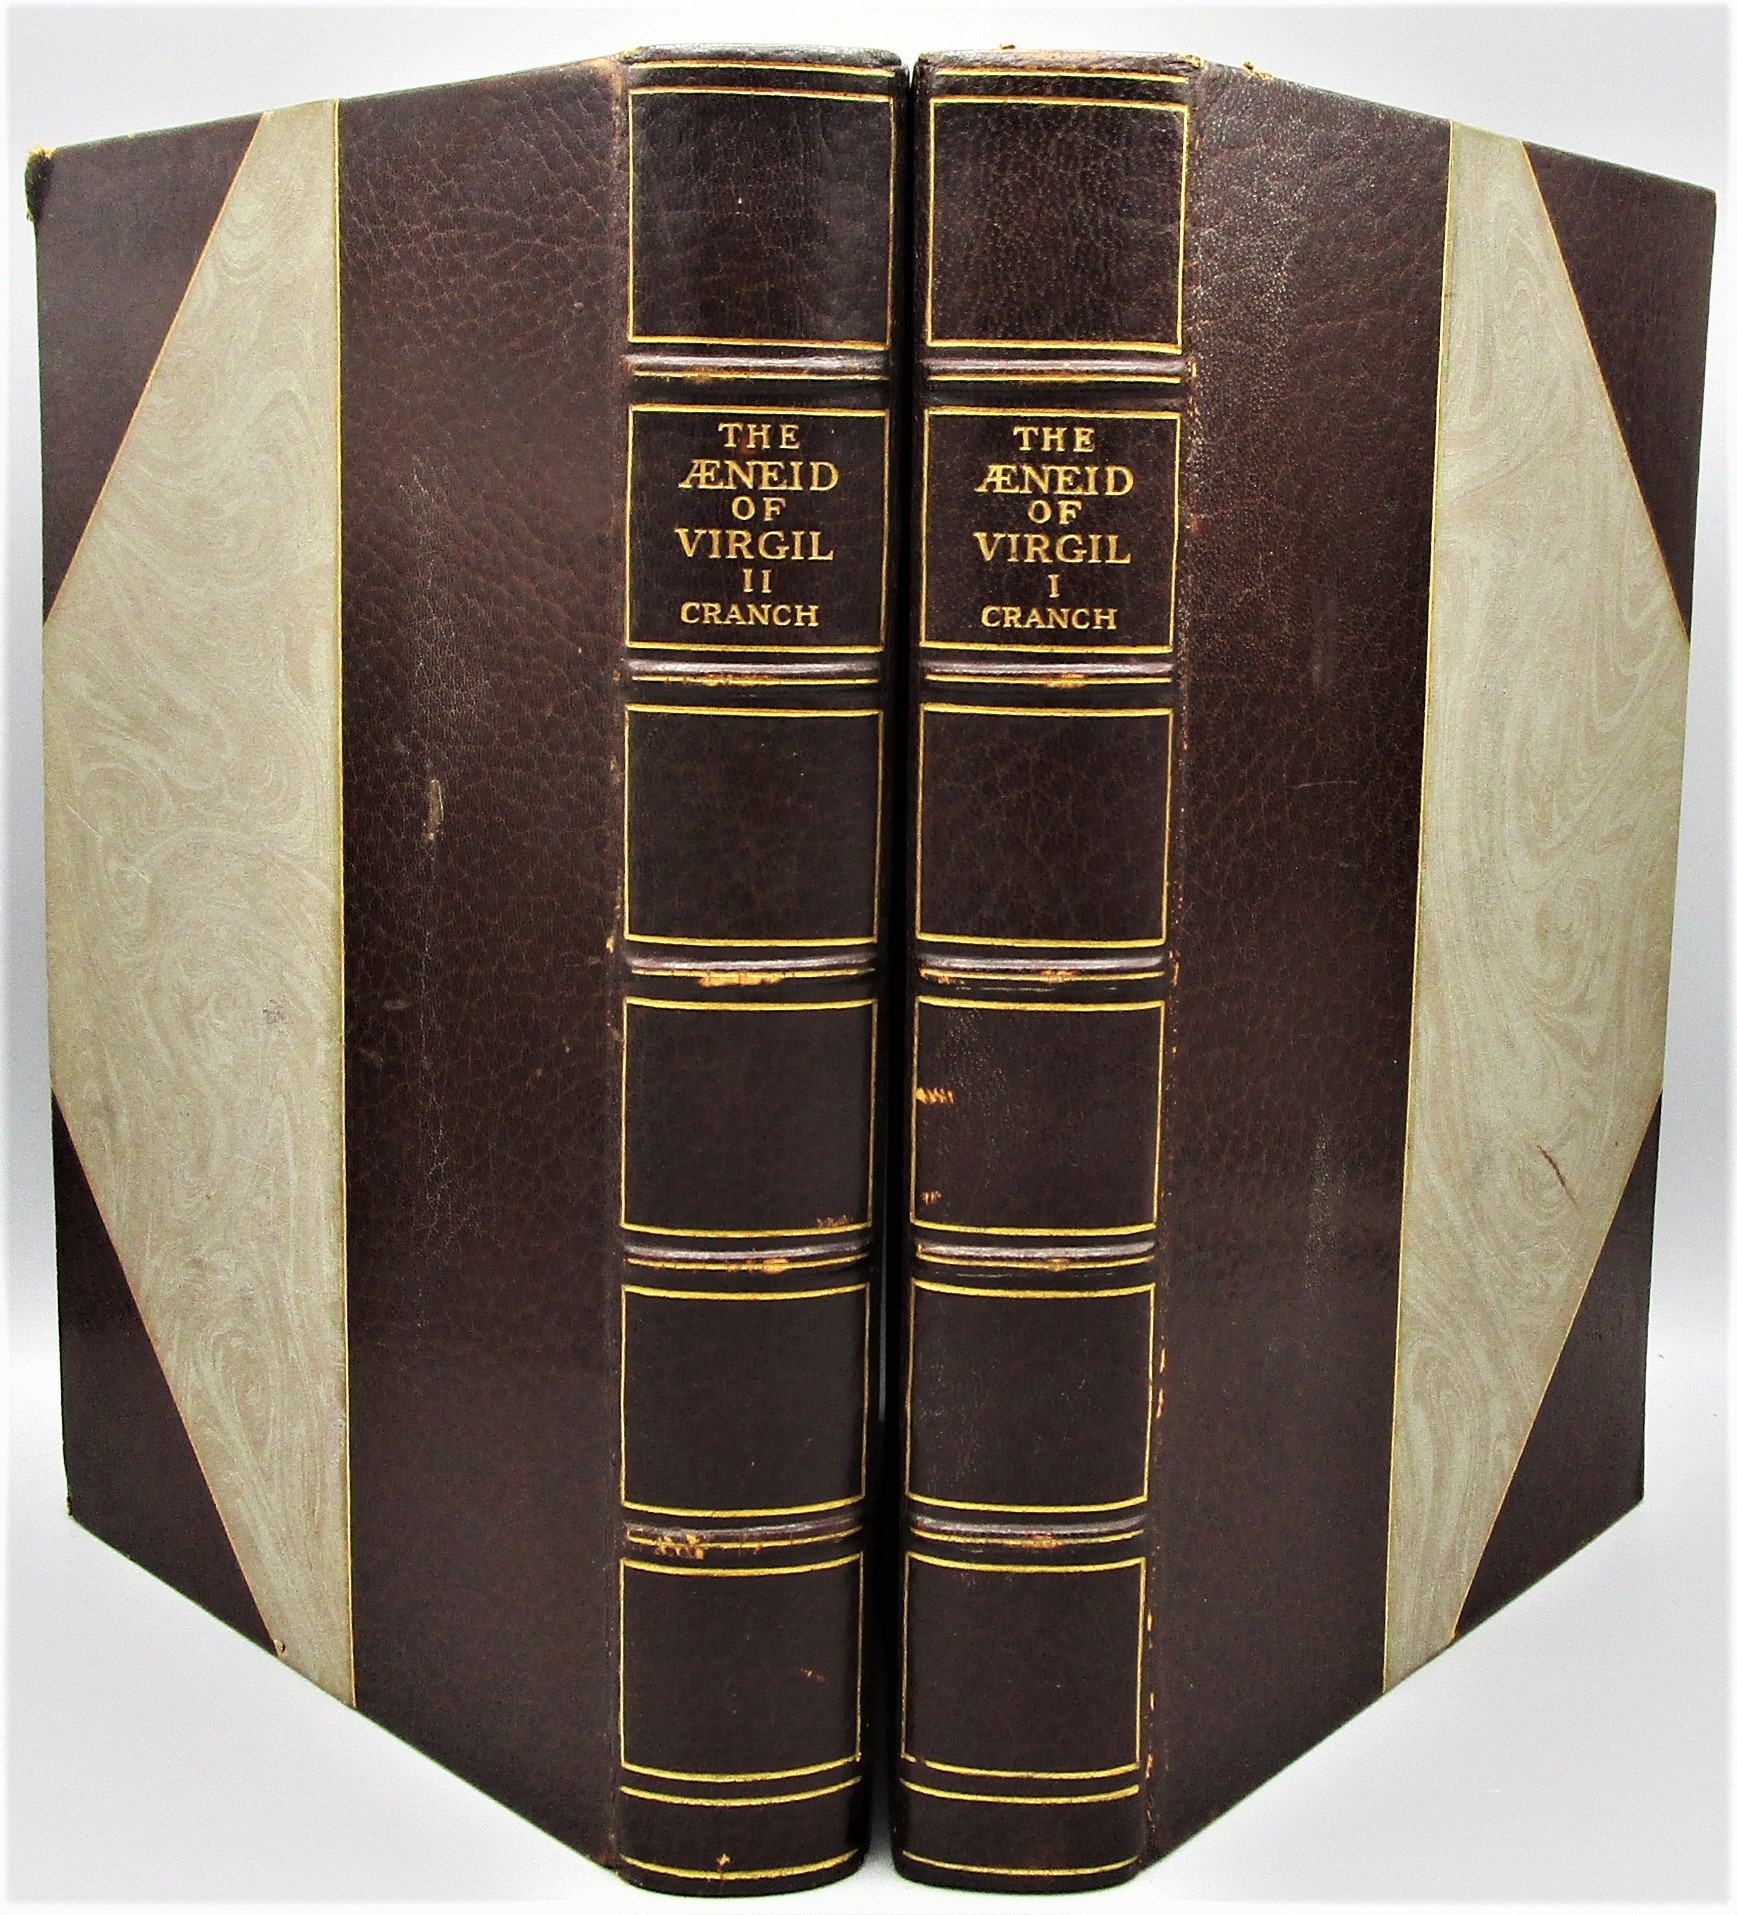 THE AENEID OF VIRGIL, by C.P. Cranch (tr) - 1906 [Ltd Ed; 2 Vols]